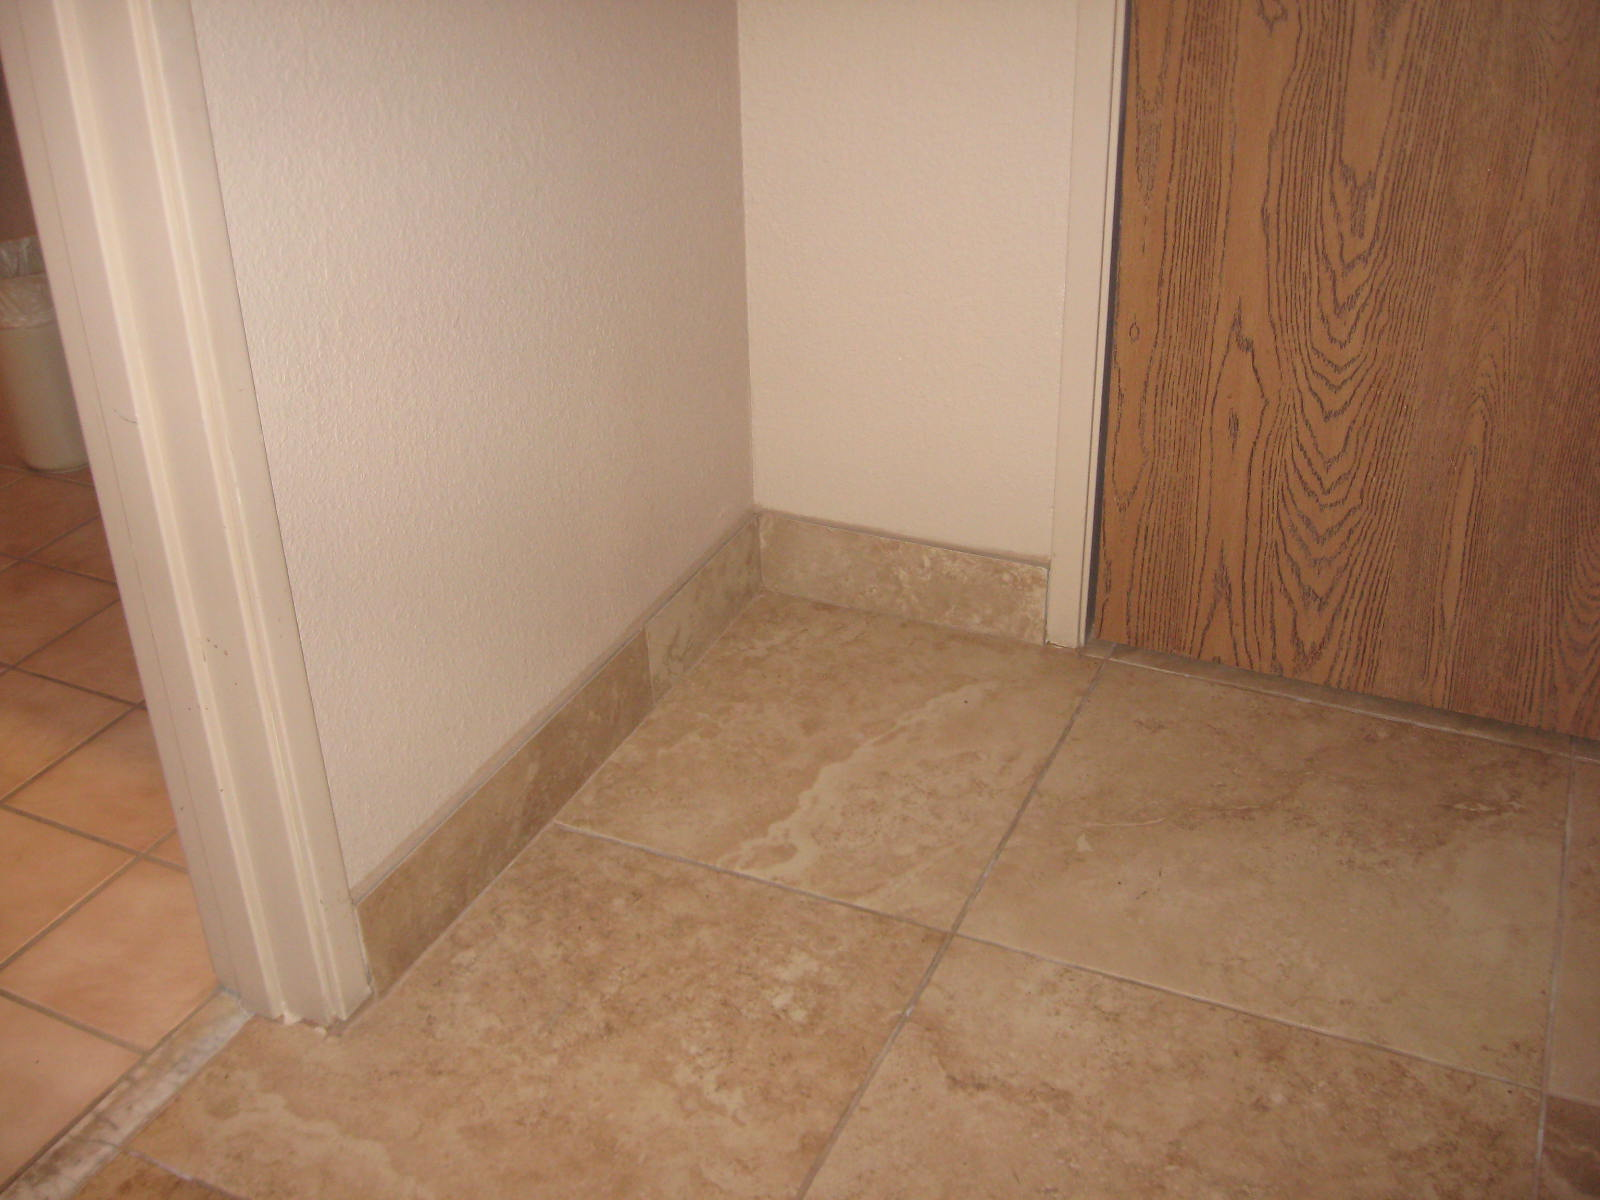 Tile floor baseboard trim image collections tile flooring design caulk baseboard to tile floor choice image home flooring design tile floor baseboard trim gallery tile doublecrazyfo Image collections